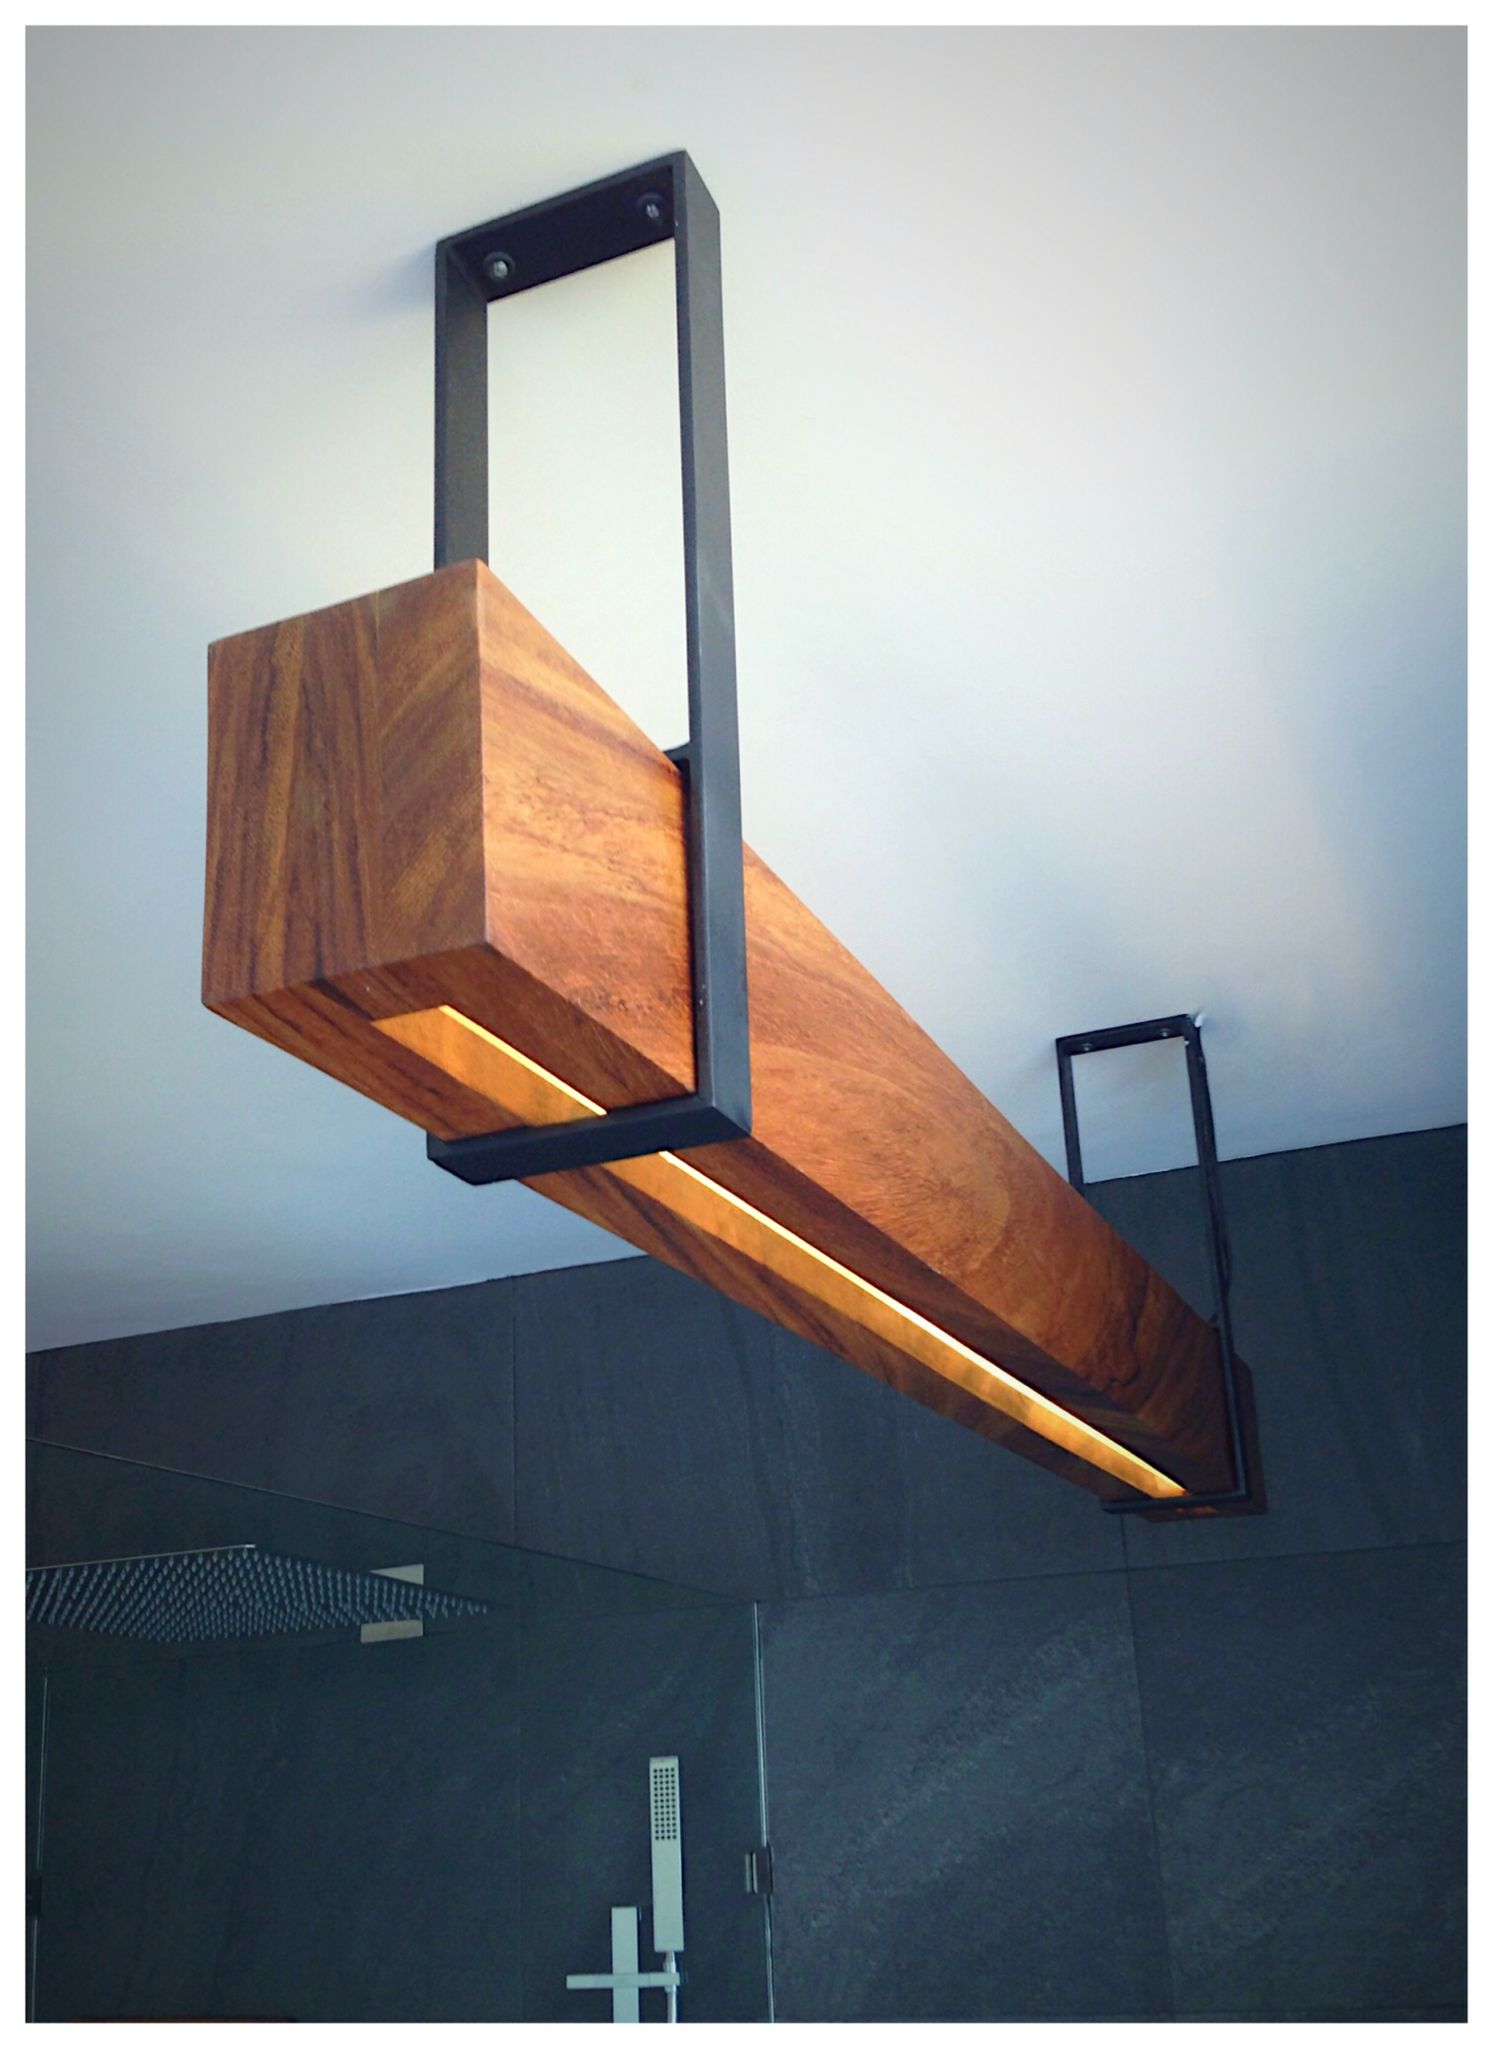 Wood Lamp Led Beleuchtung Beleuchtung Holzdesign